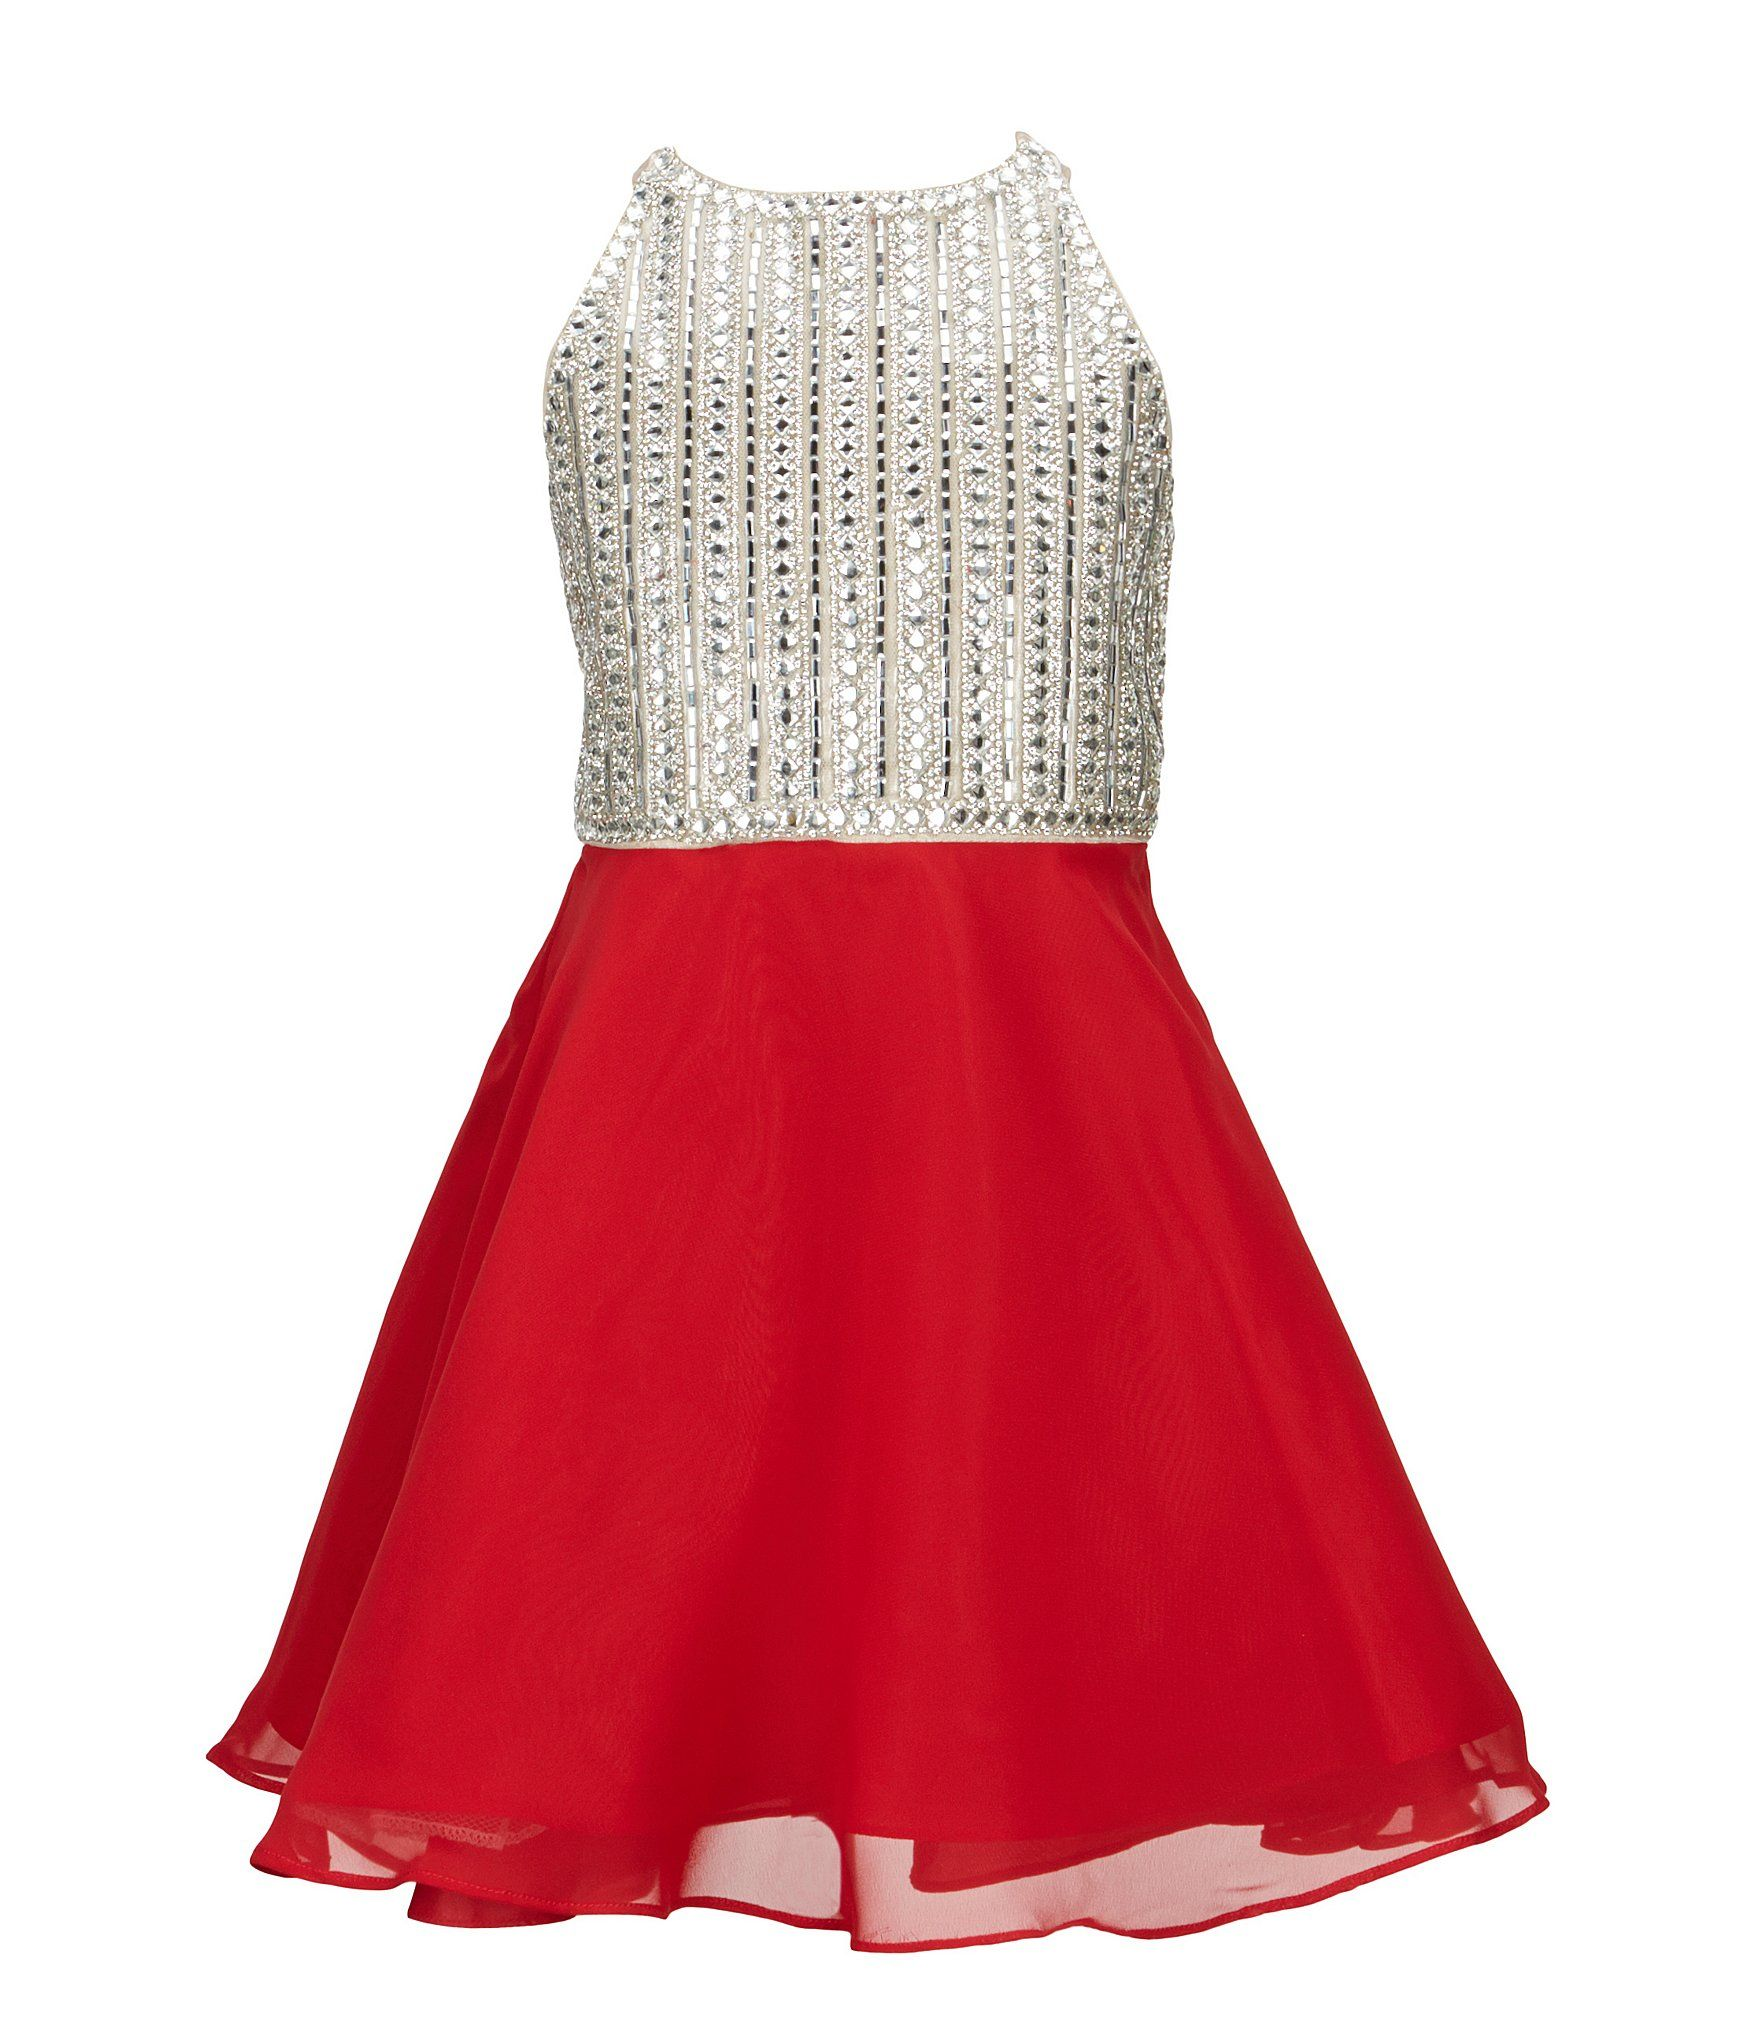 Tween Diva Big Girls 7-16 Rhinestone Fit-and-Flare Dress | Tween ...